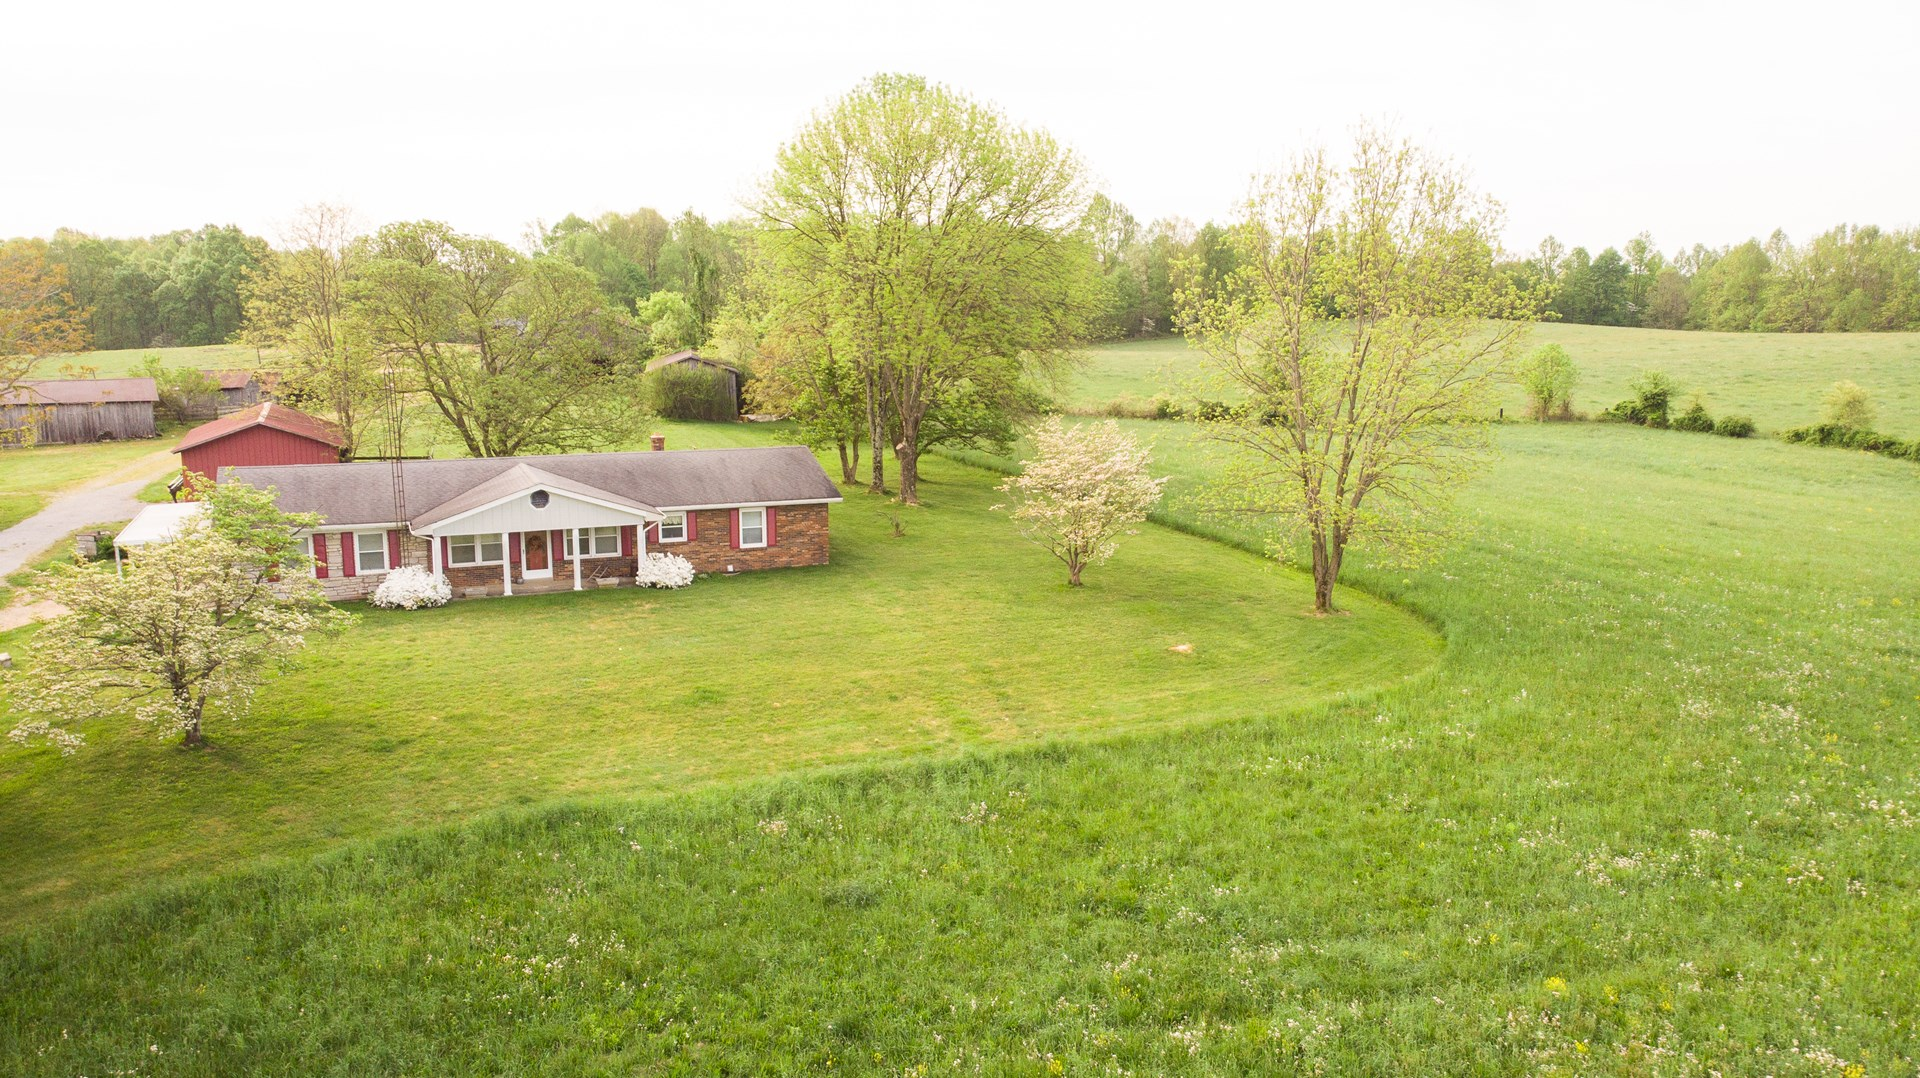 Country home & farm for sale in Liberty Kentucky